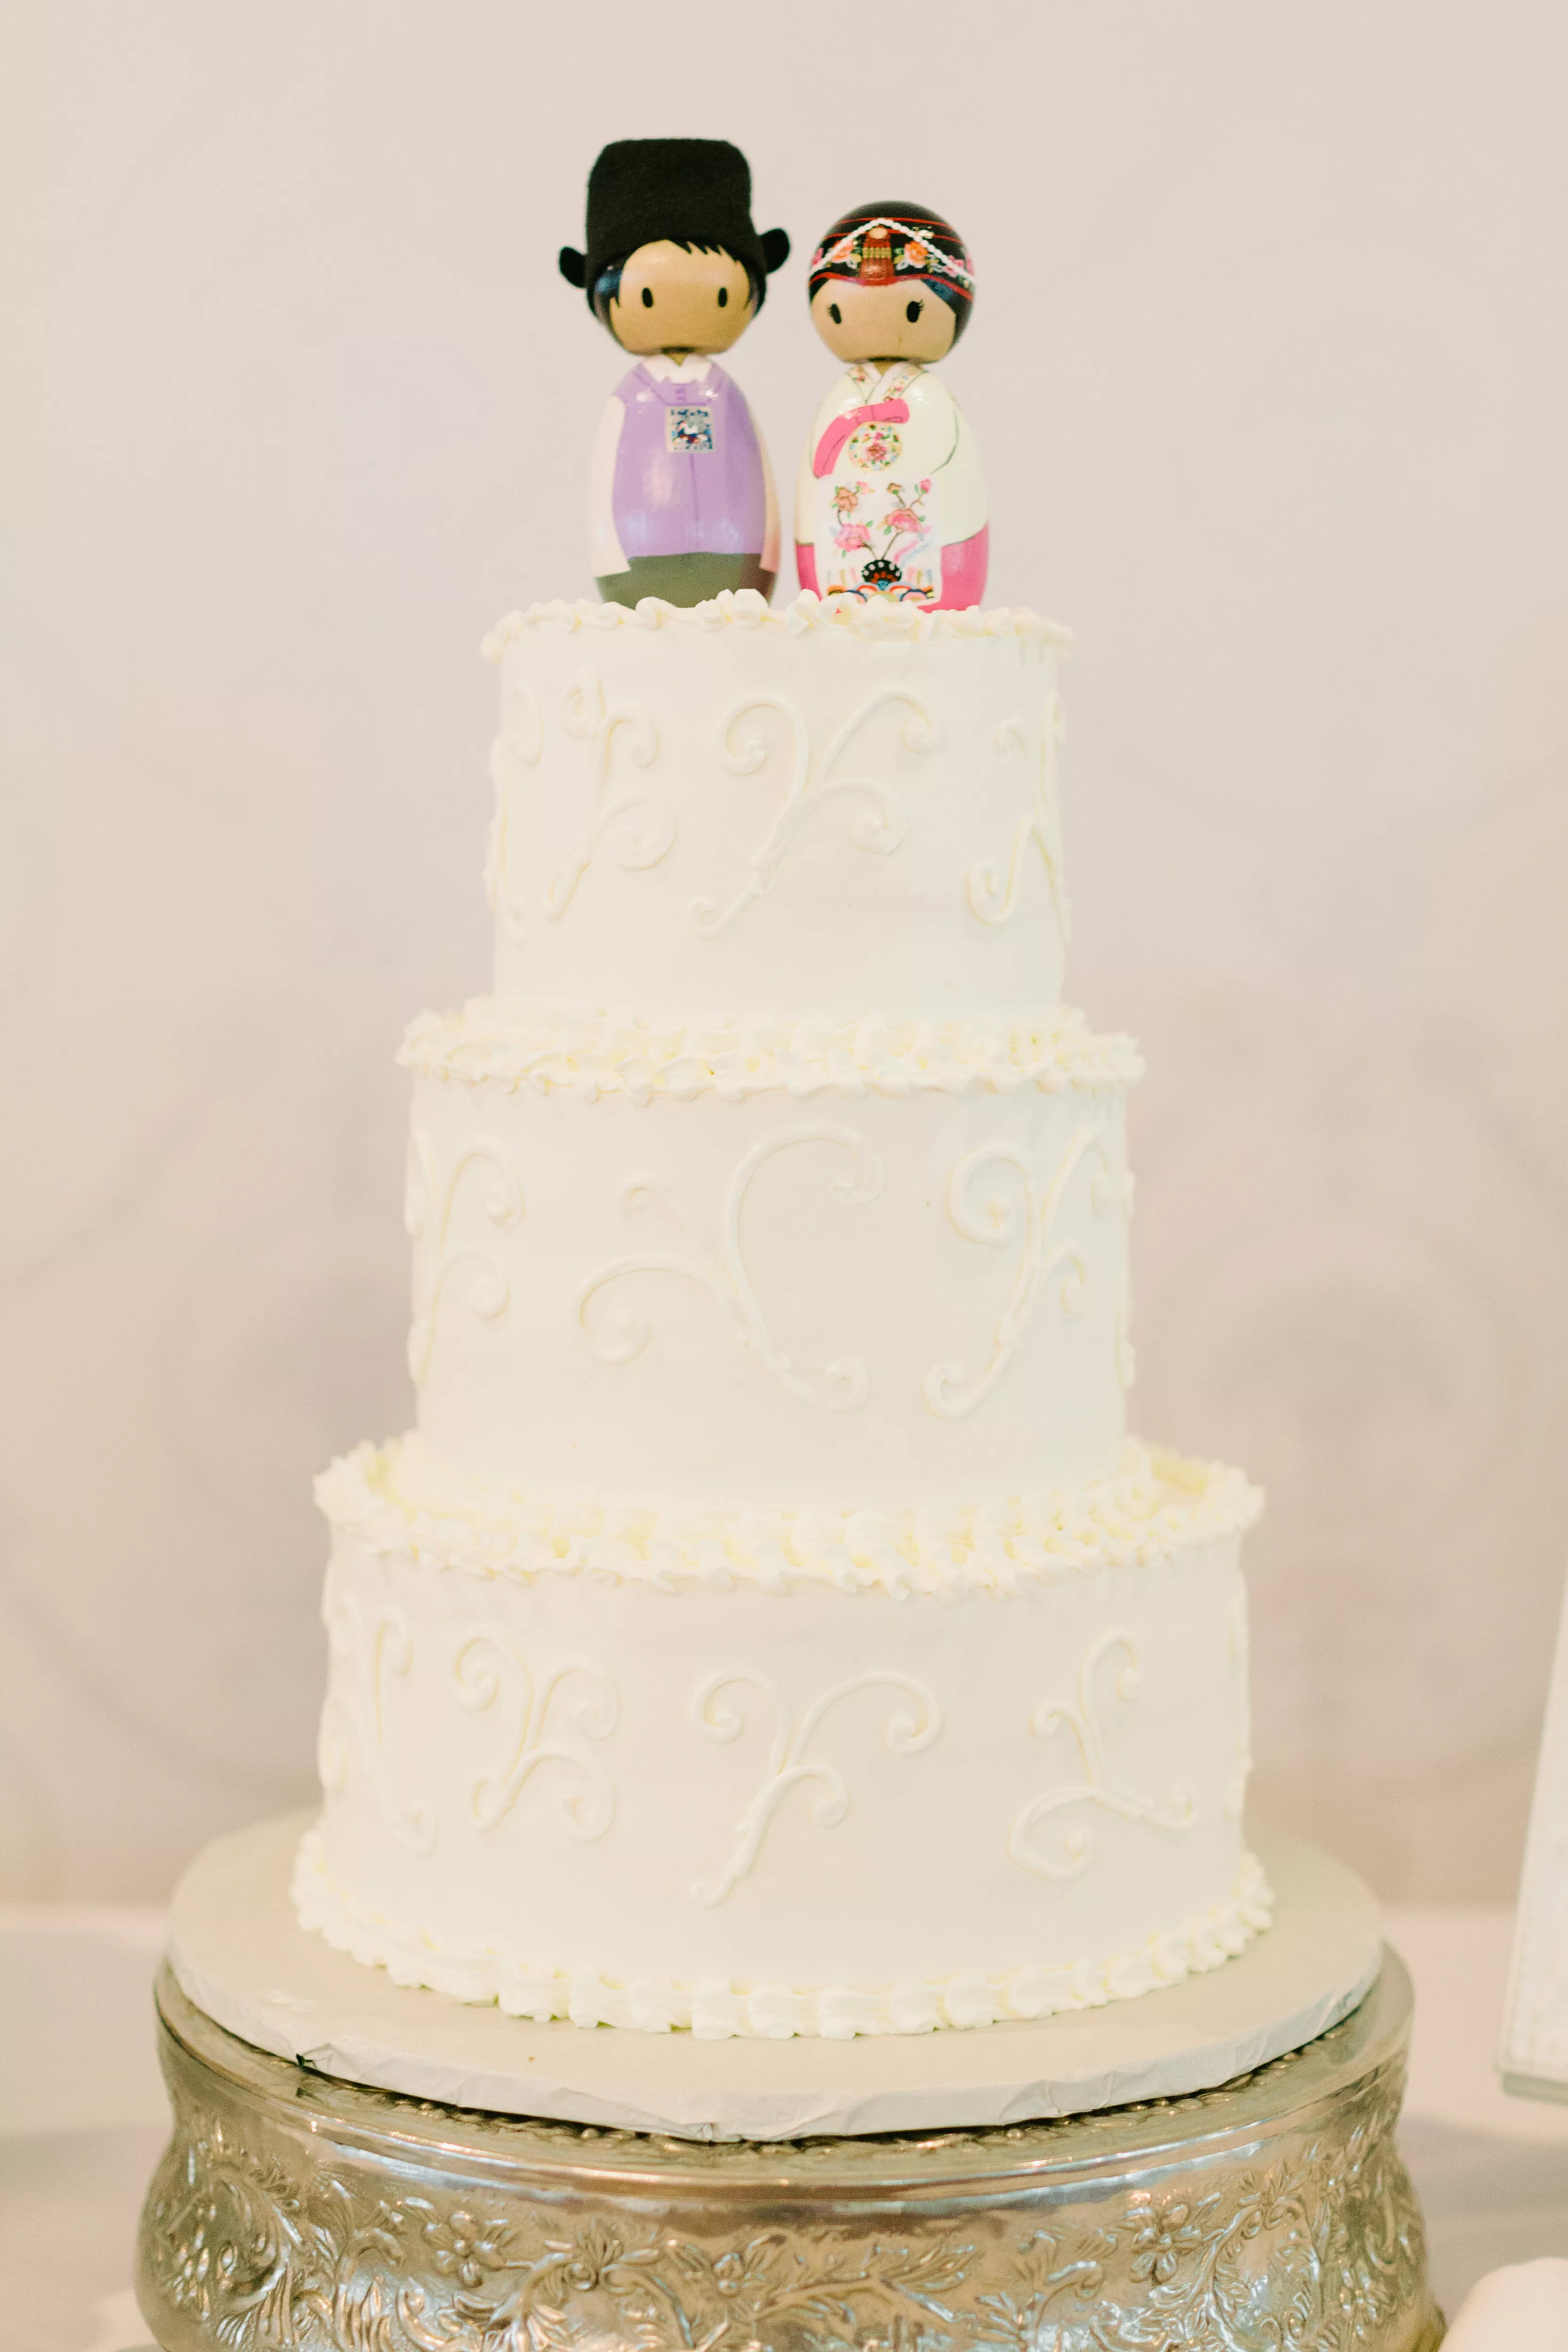 Cake Topper In Traditional Korean Outfits On Classic White